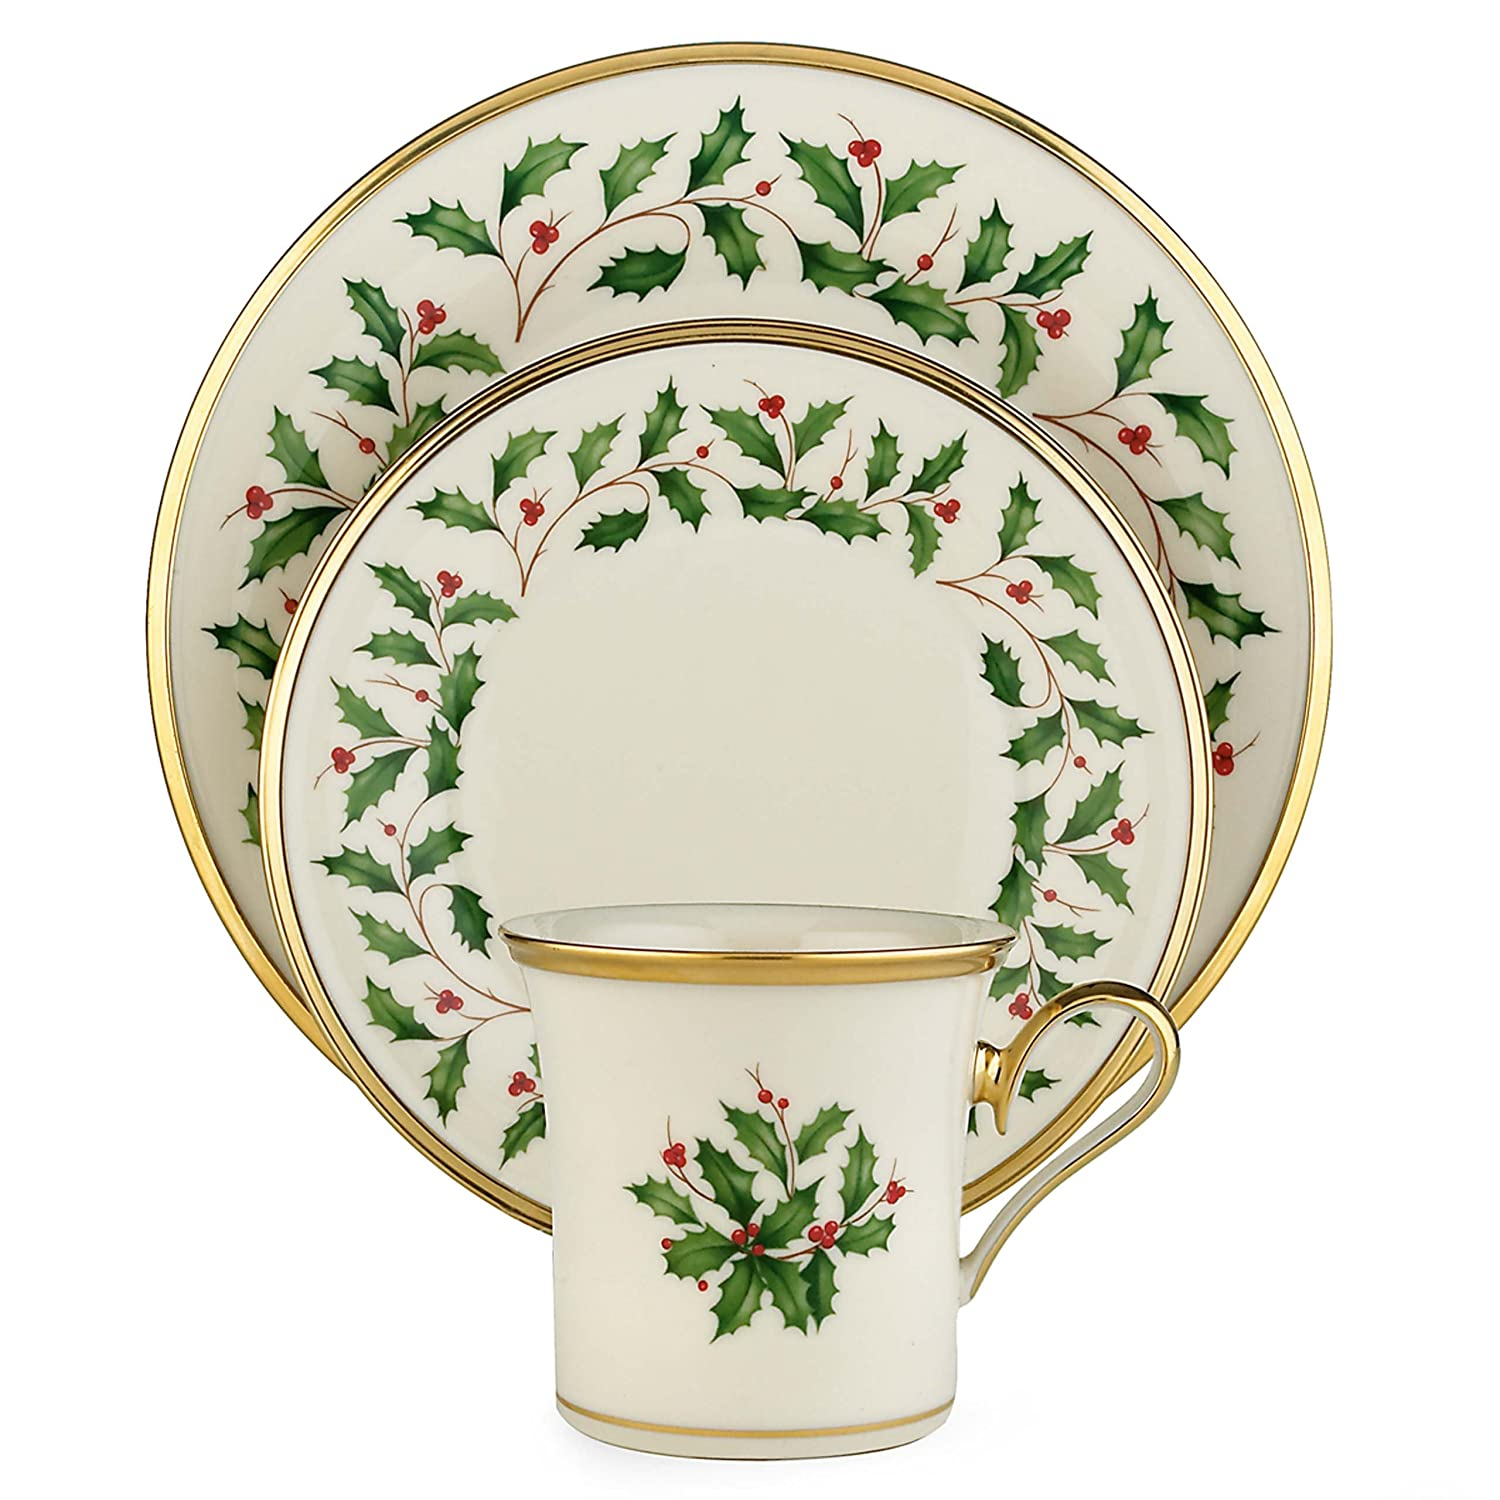 sc 1 st  Amazon.com & Amazon.com: Lenox Holiday 12-Piece Dinnerware Set: Kitchen \u0026 Dining